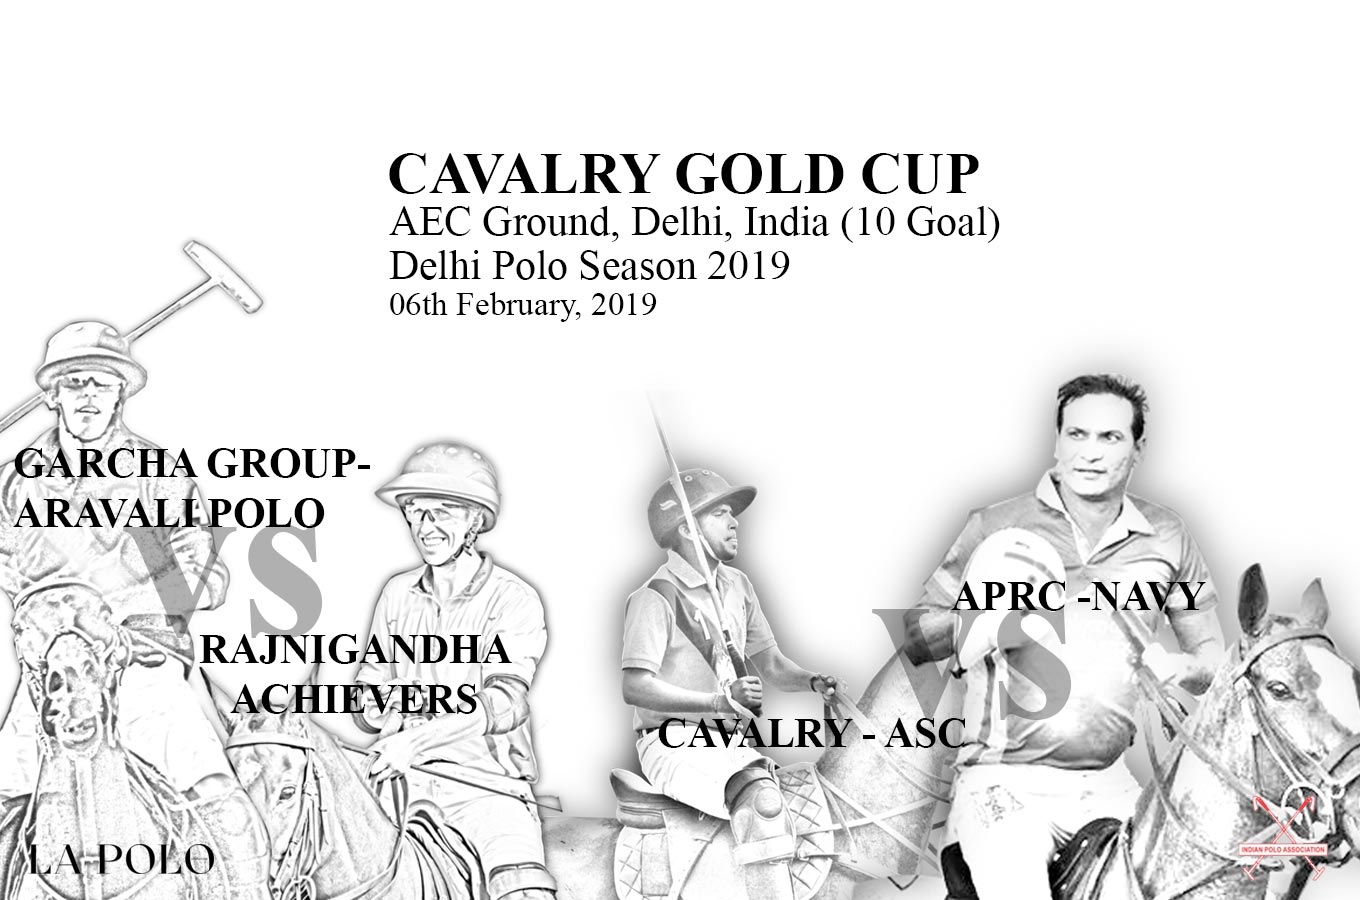 he Inaugural Day Of Cavalry Gold Cup?